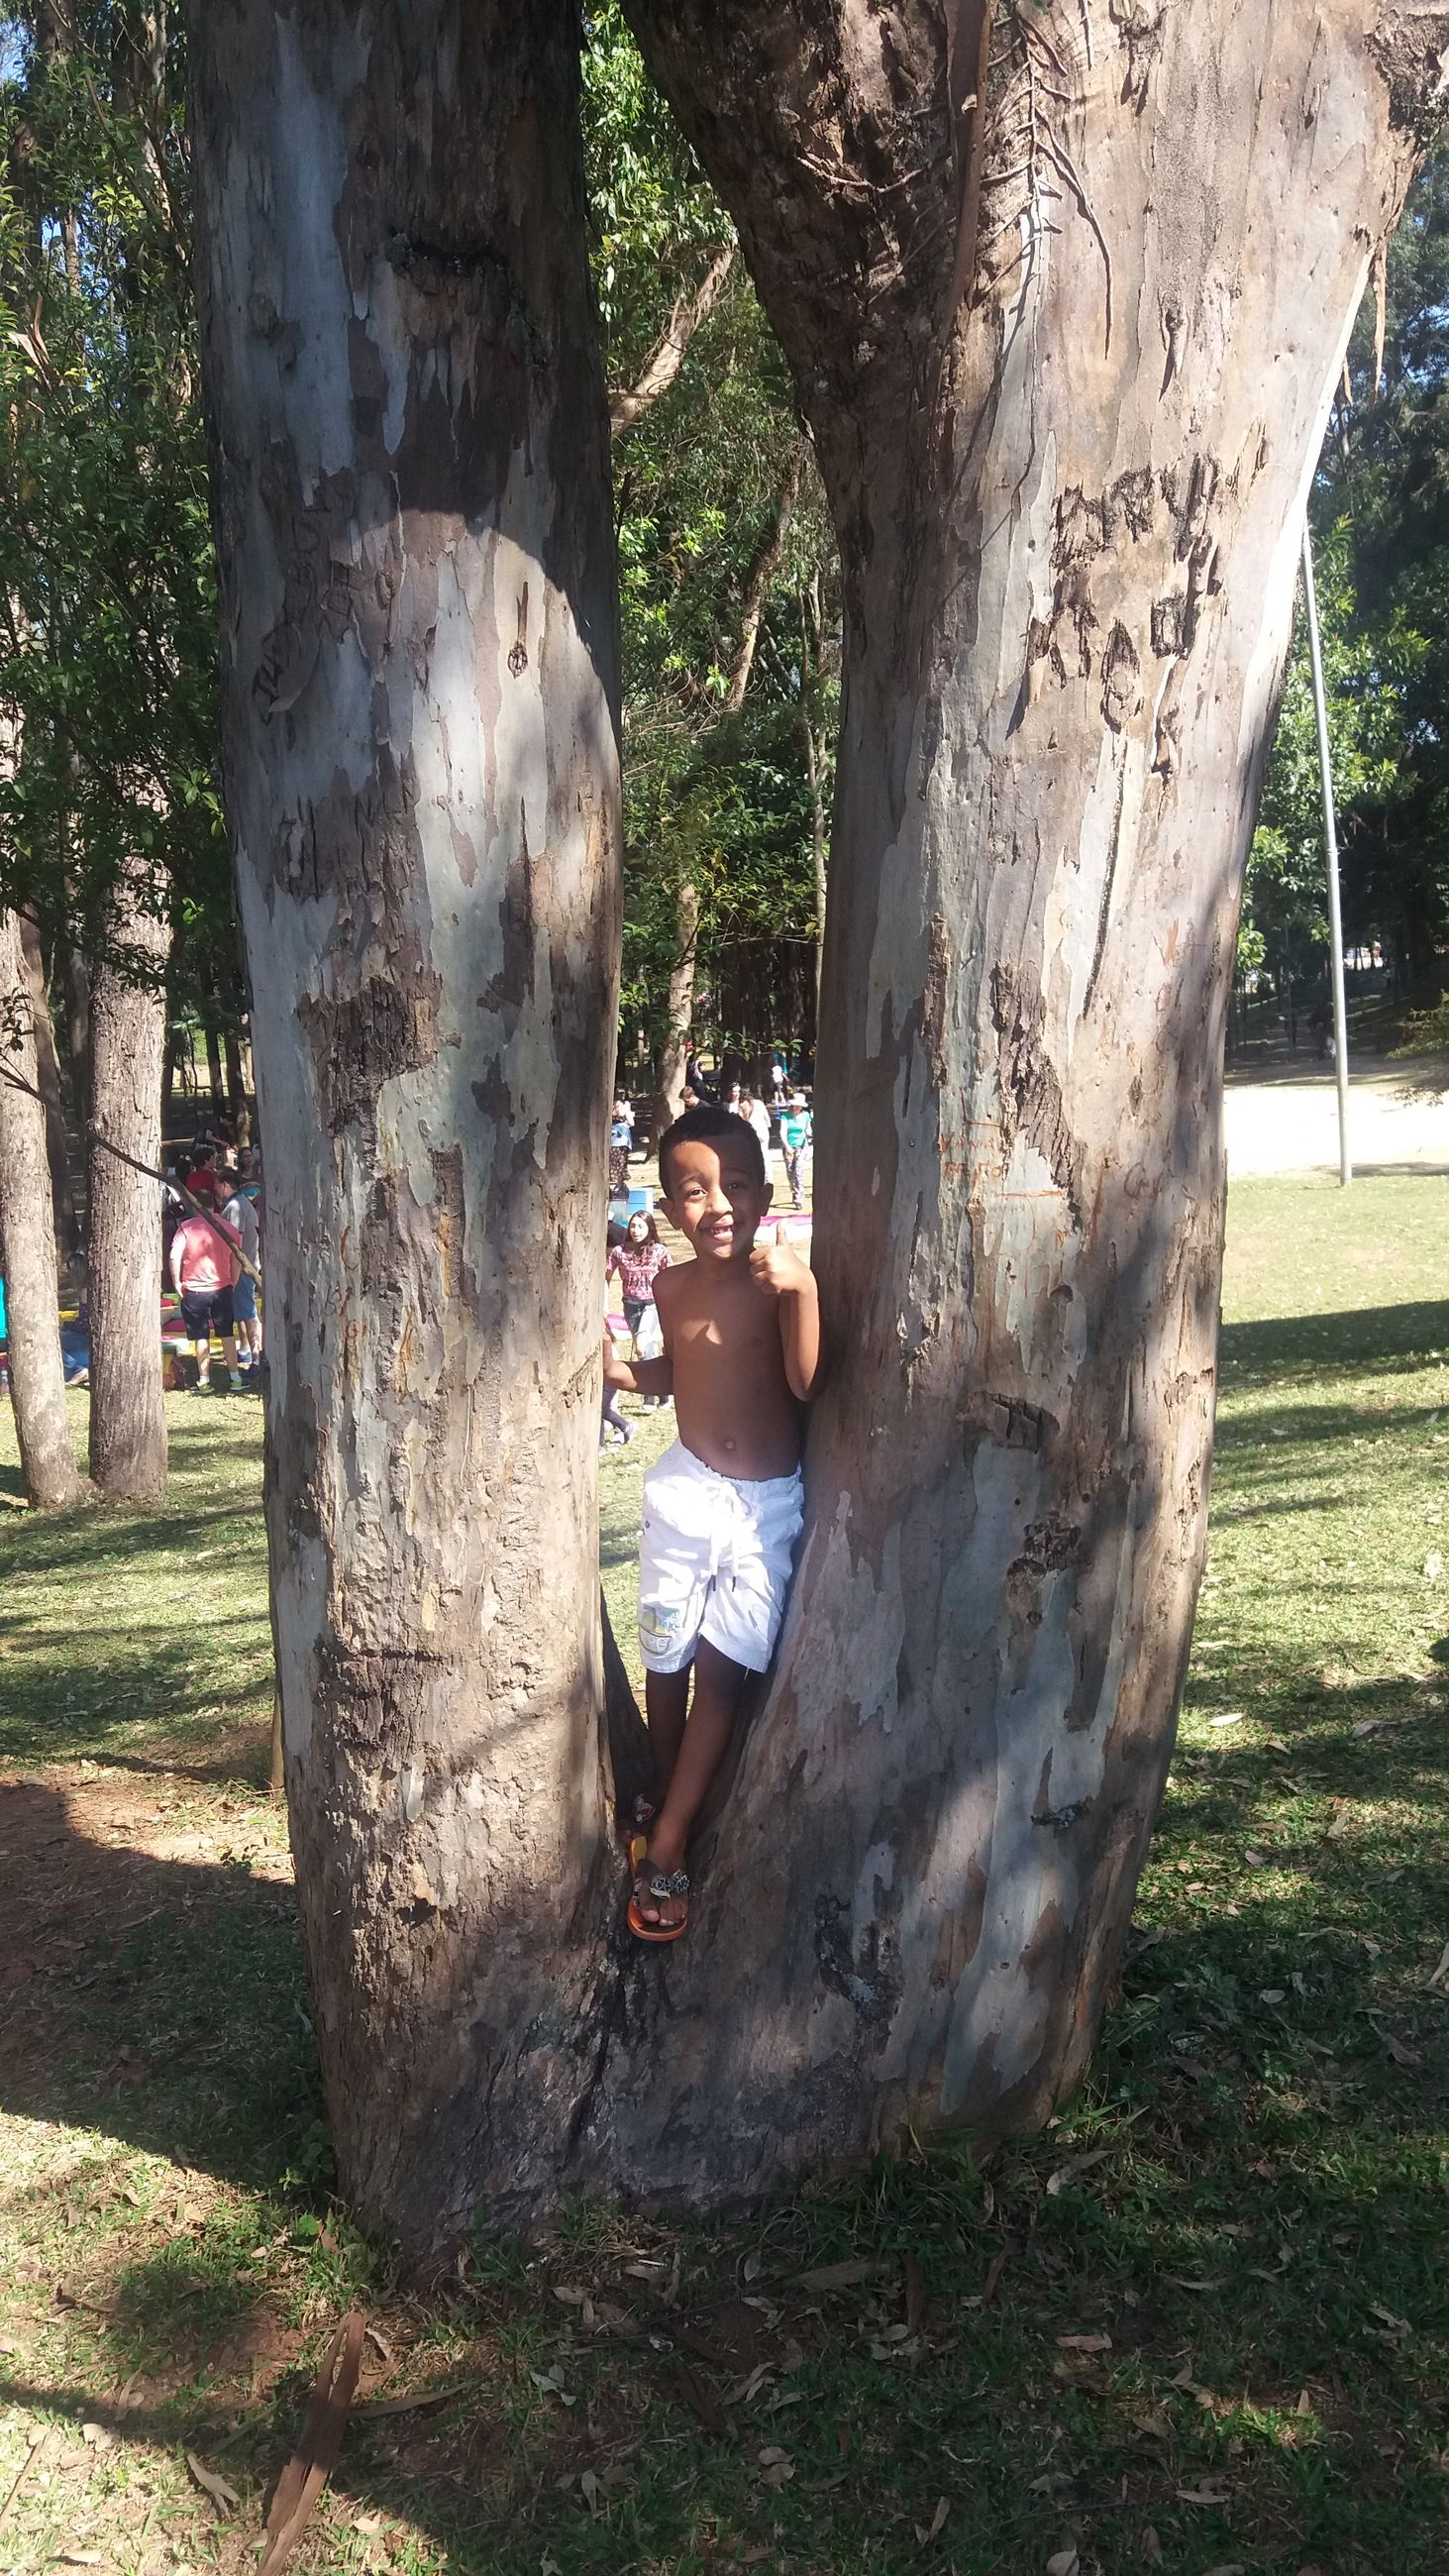 Boy standing amidst tree trunk at park